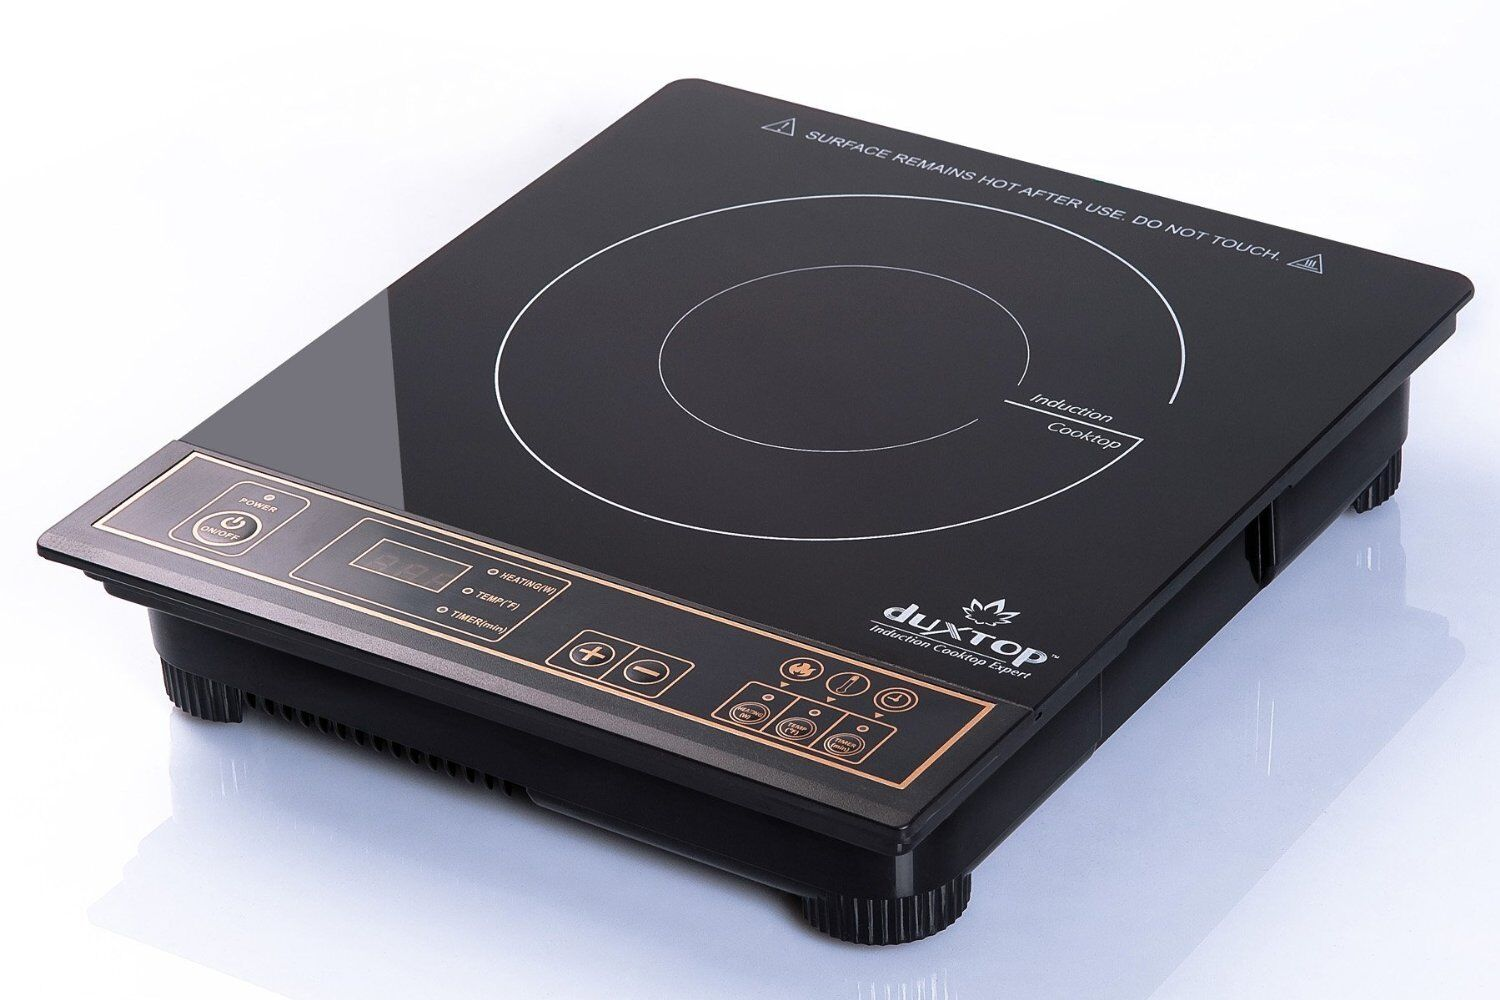 Electric Single Burner HotPlate Compact Induction Cooktop Burner Cooks Faster